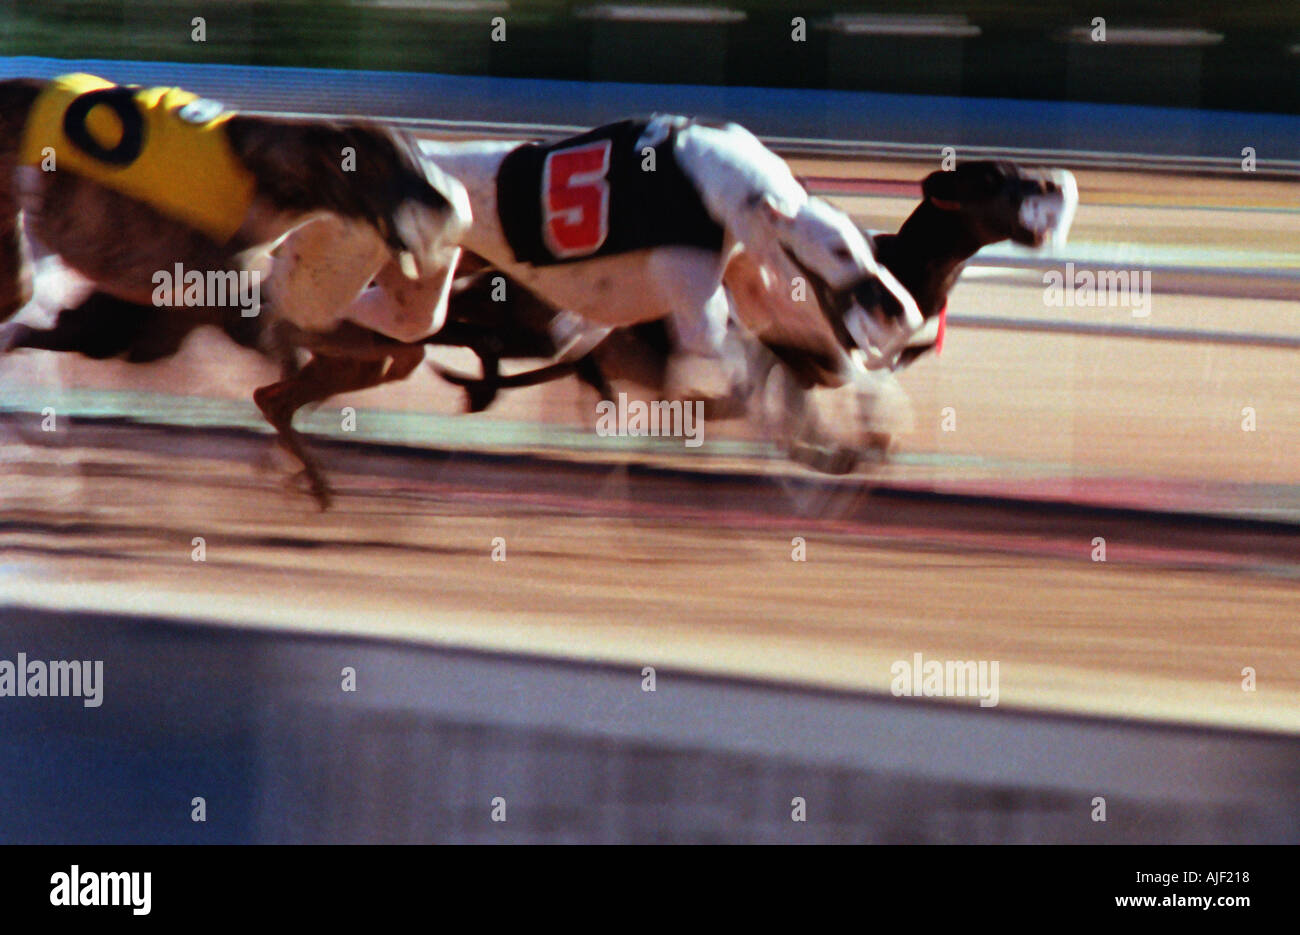 Dogs heading into the final stretch - Stock Image